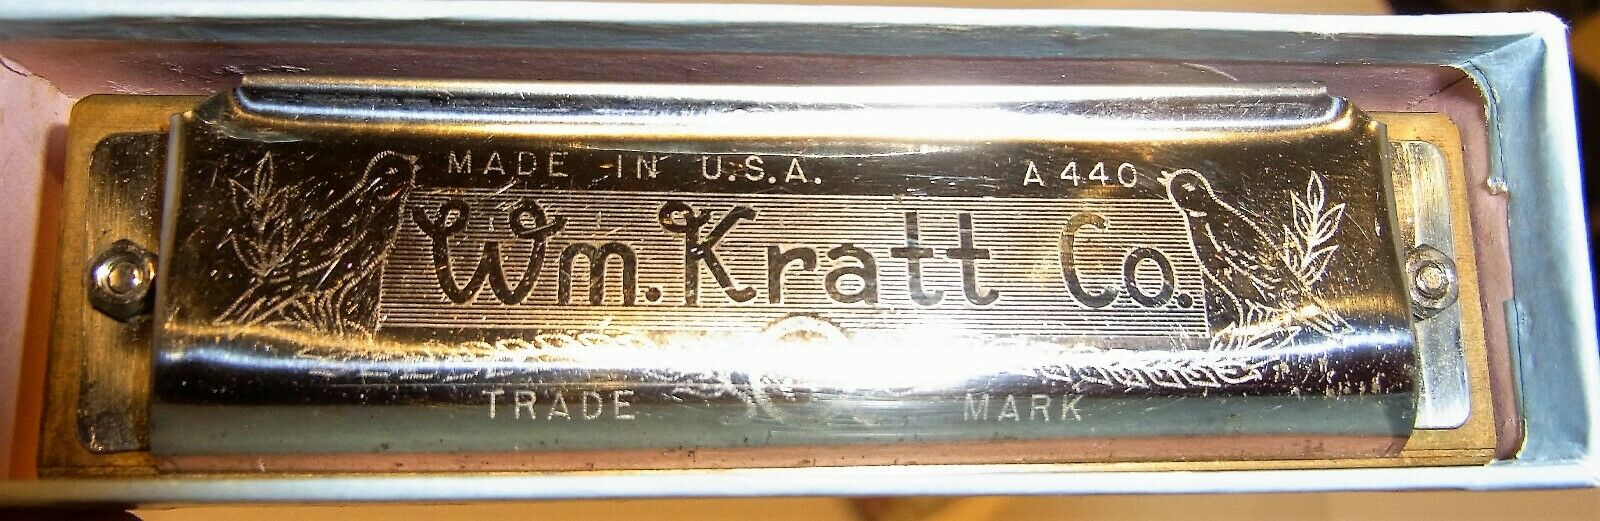 Wm.Kratt Co, A440, The Warbler, Professional Harmonica, in OVP, made in USA